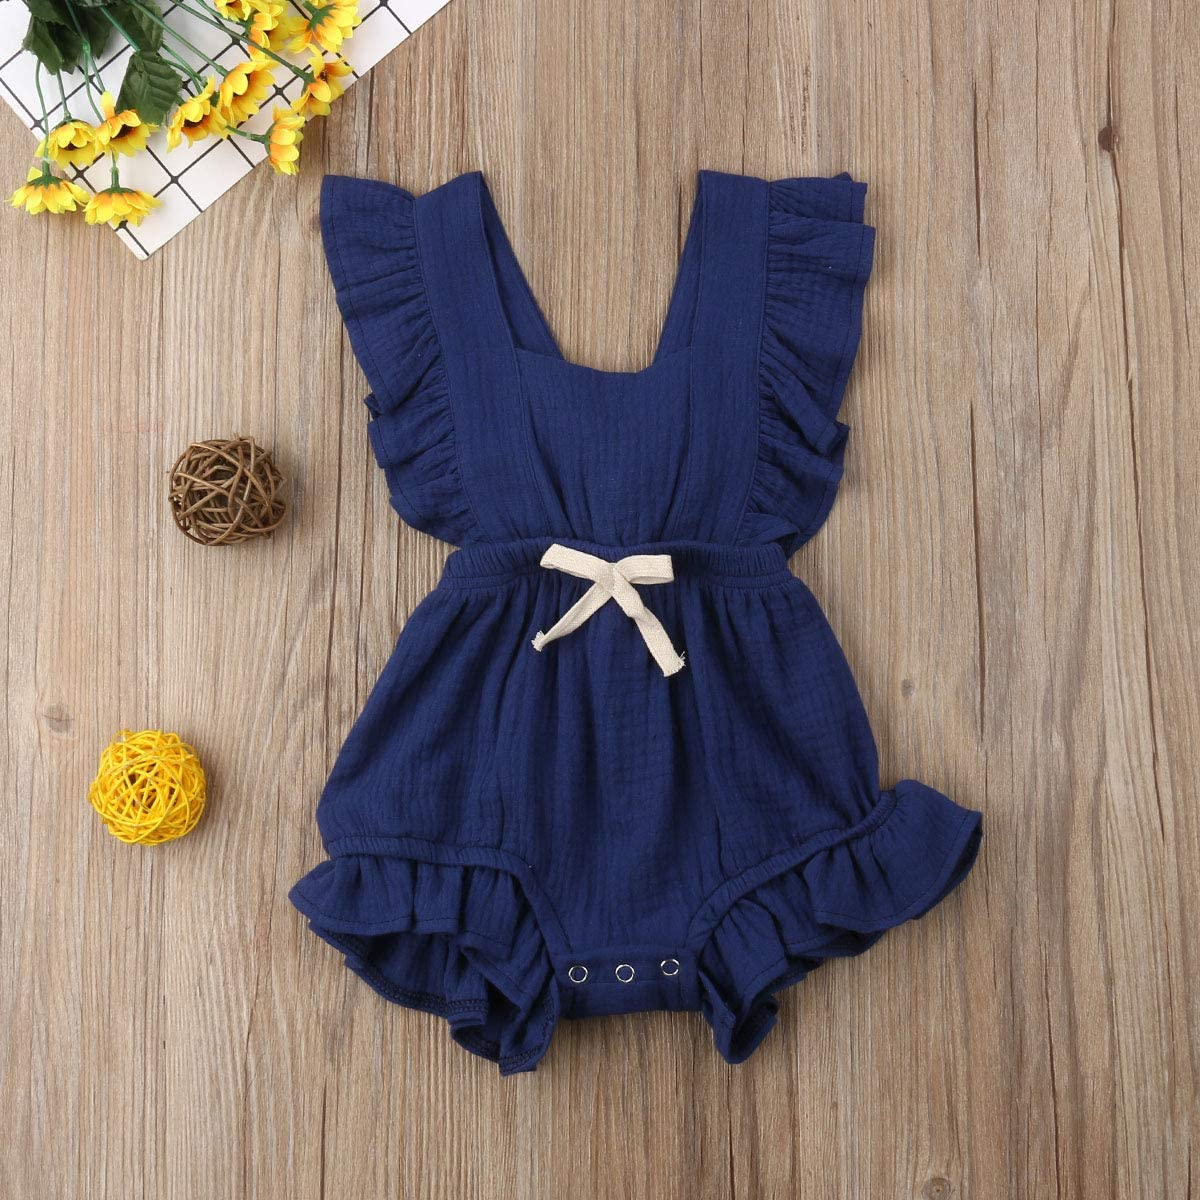 Cotrio Toddler Baby Girl Ruffled Rompers Sleeveless Cotton Romper Bodysuit Jumpsuit Clothes